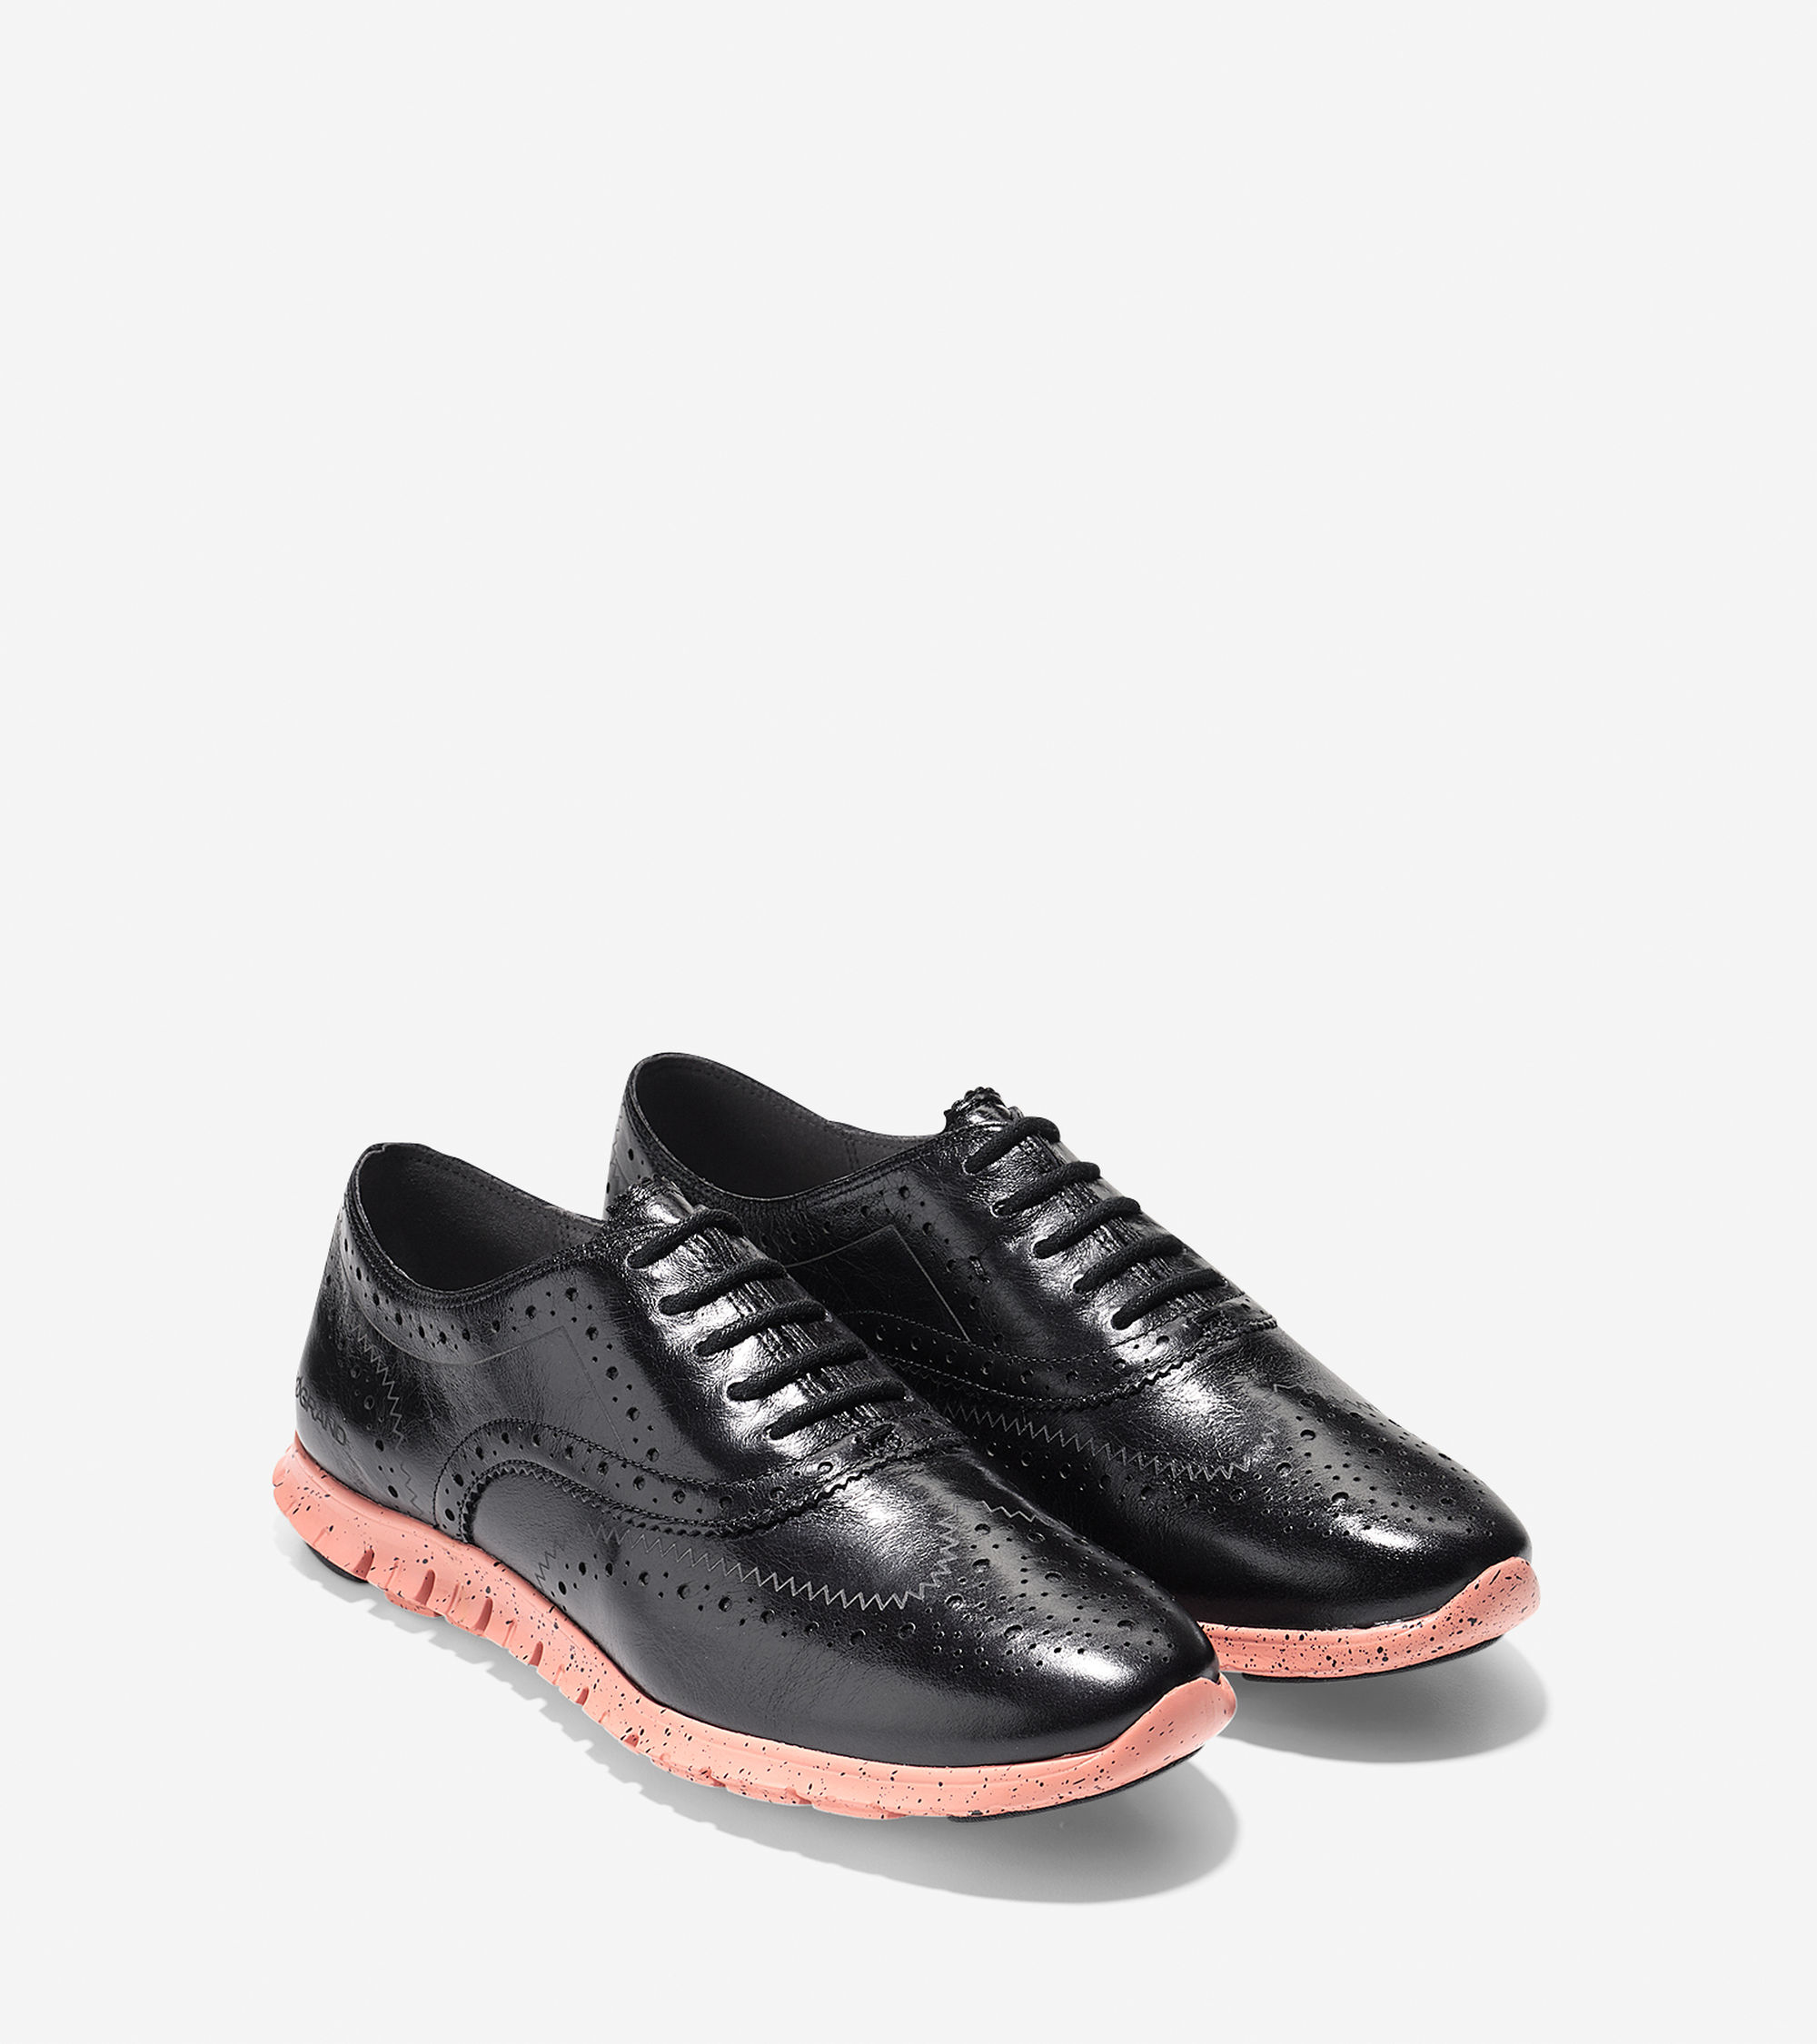 cole haan zer 248 grand leather oxford shoes in black lyst